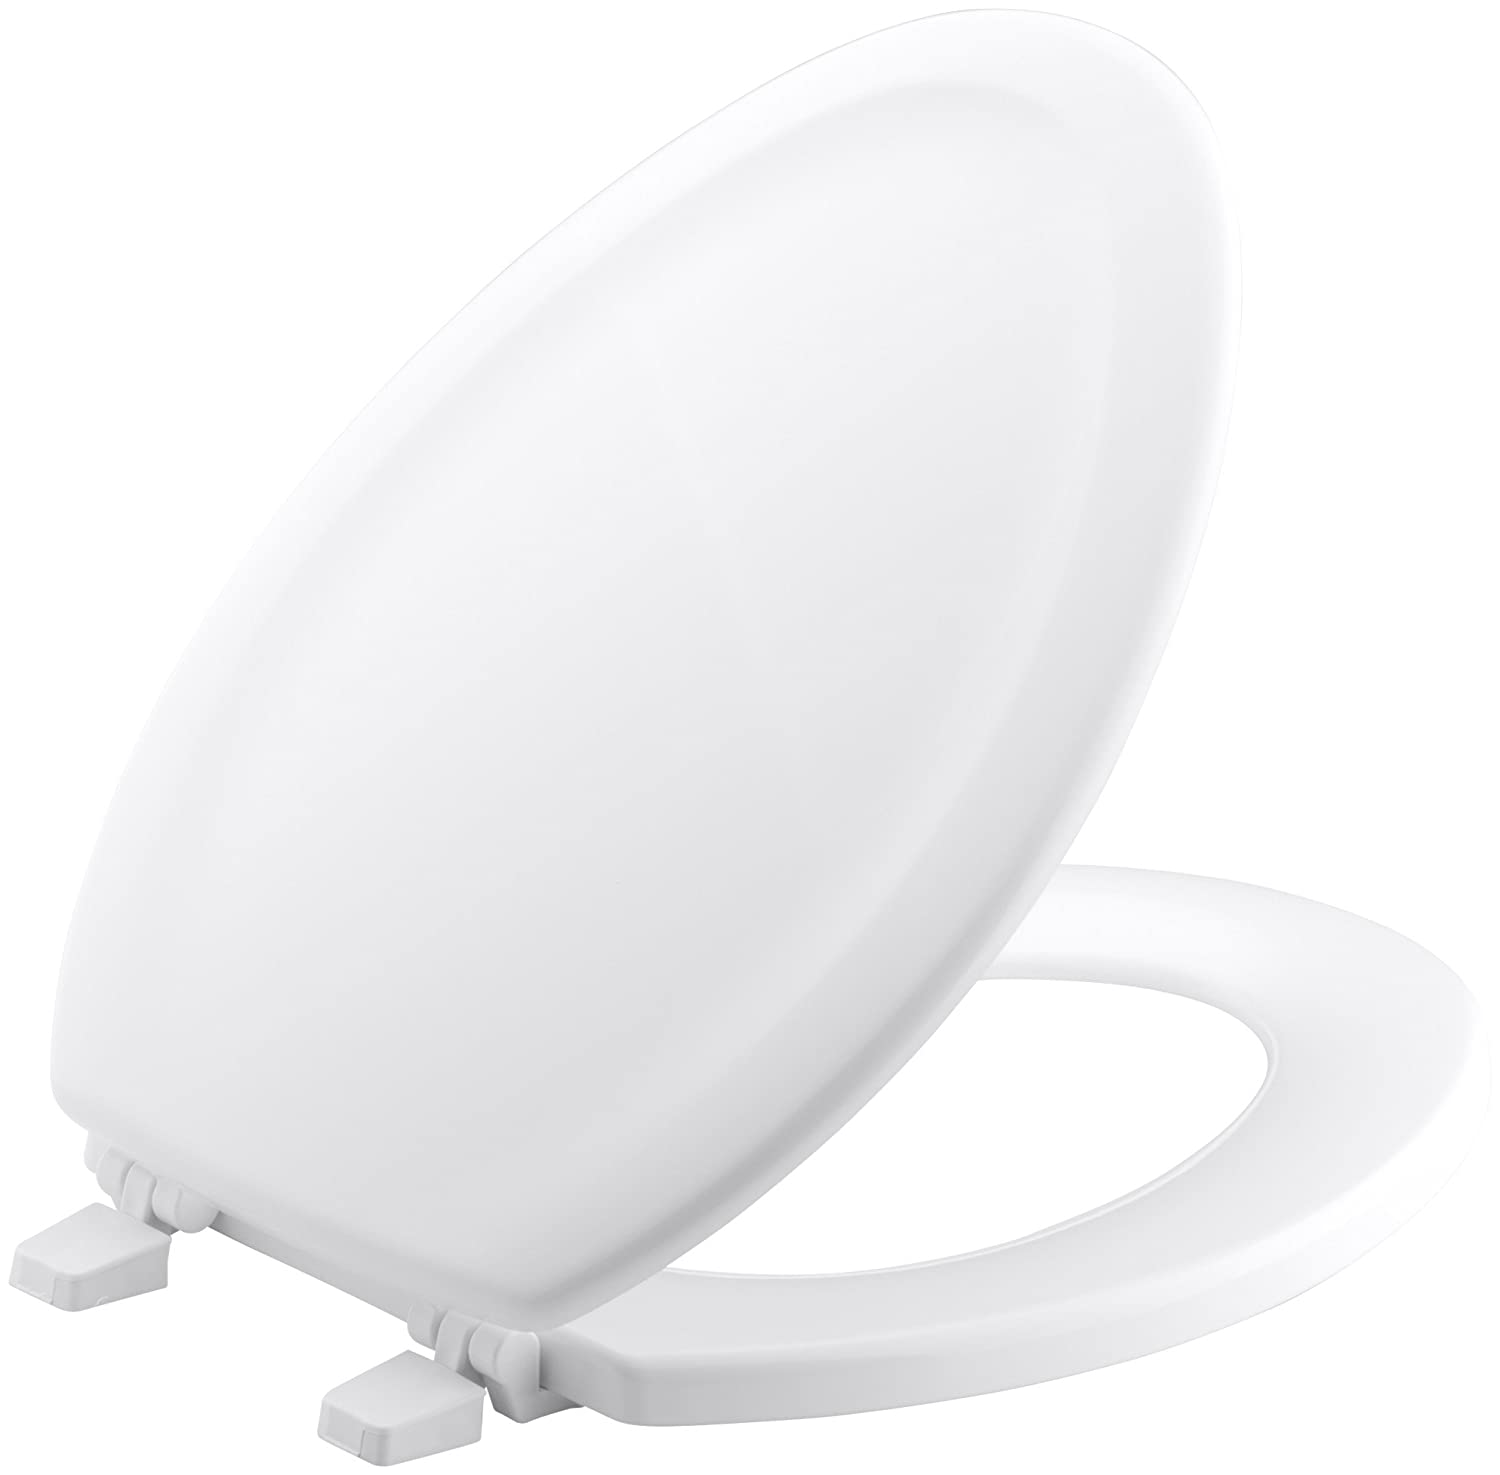 KOHLER K 4647 0 Stonewood Molded Wood with Color Matched Plastic Hinges  Elongated Toilet Seat  White     Amazon comKOHLER K 4647 0 Stonewood Molded Wood with Color Matched Plastic  . D Shaped Wooden Toilet Seat. Home Design Ideas